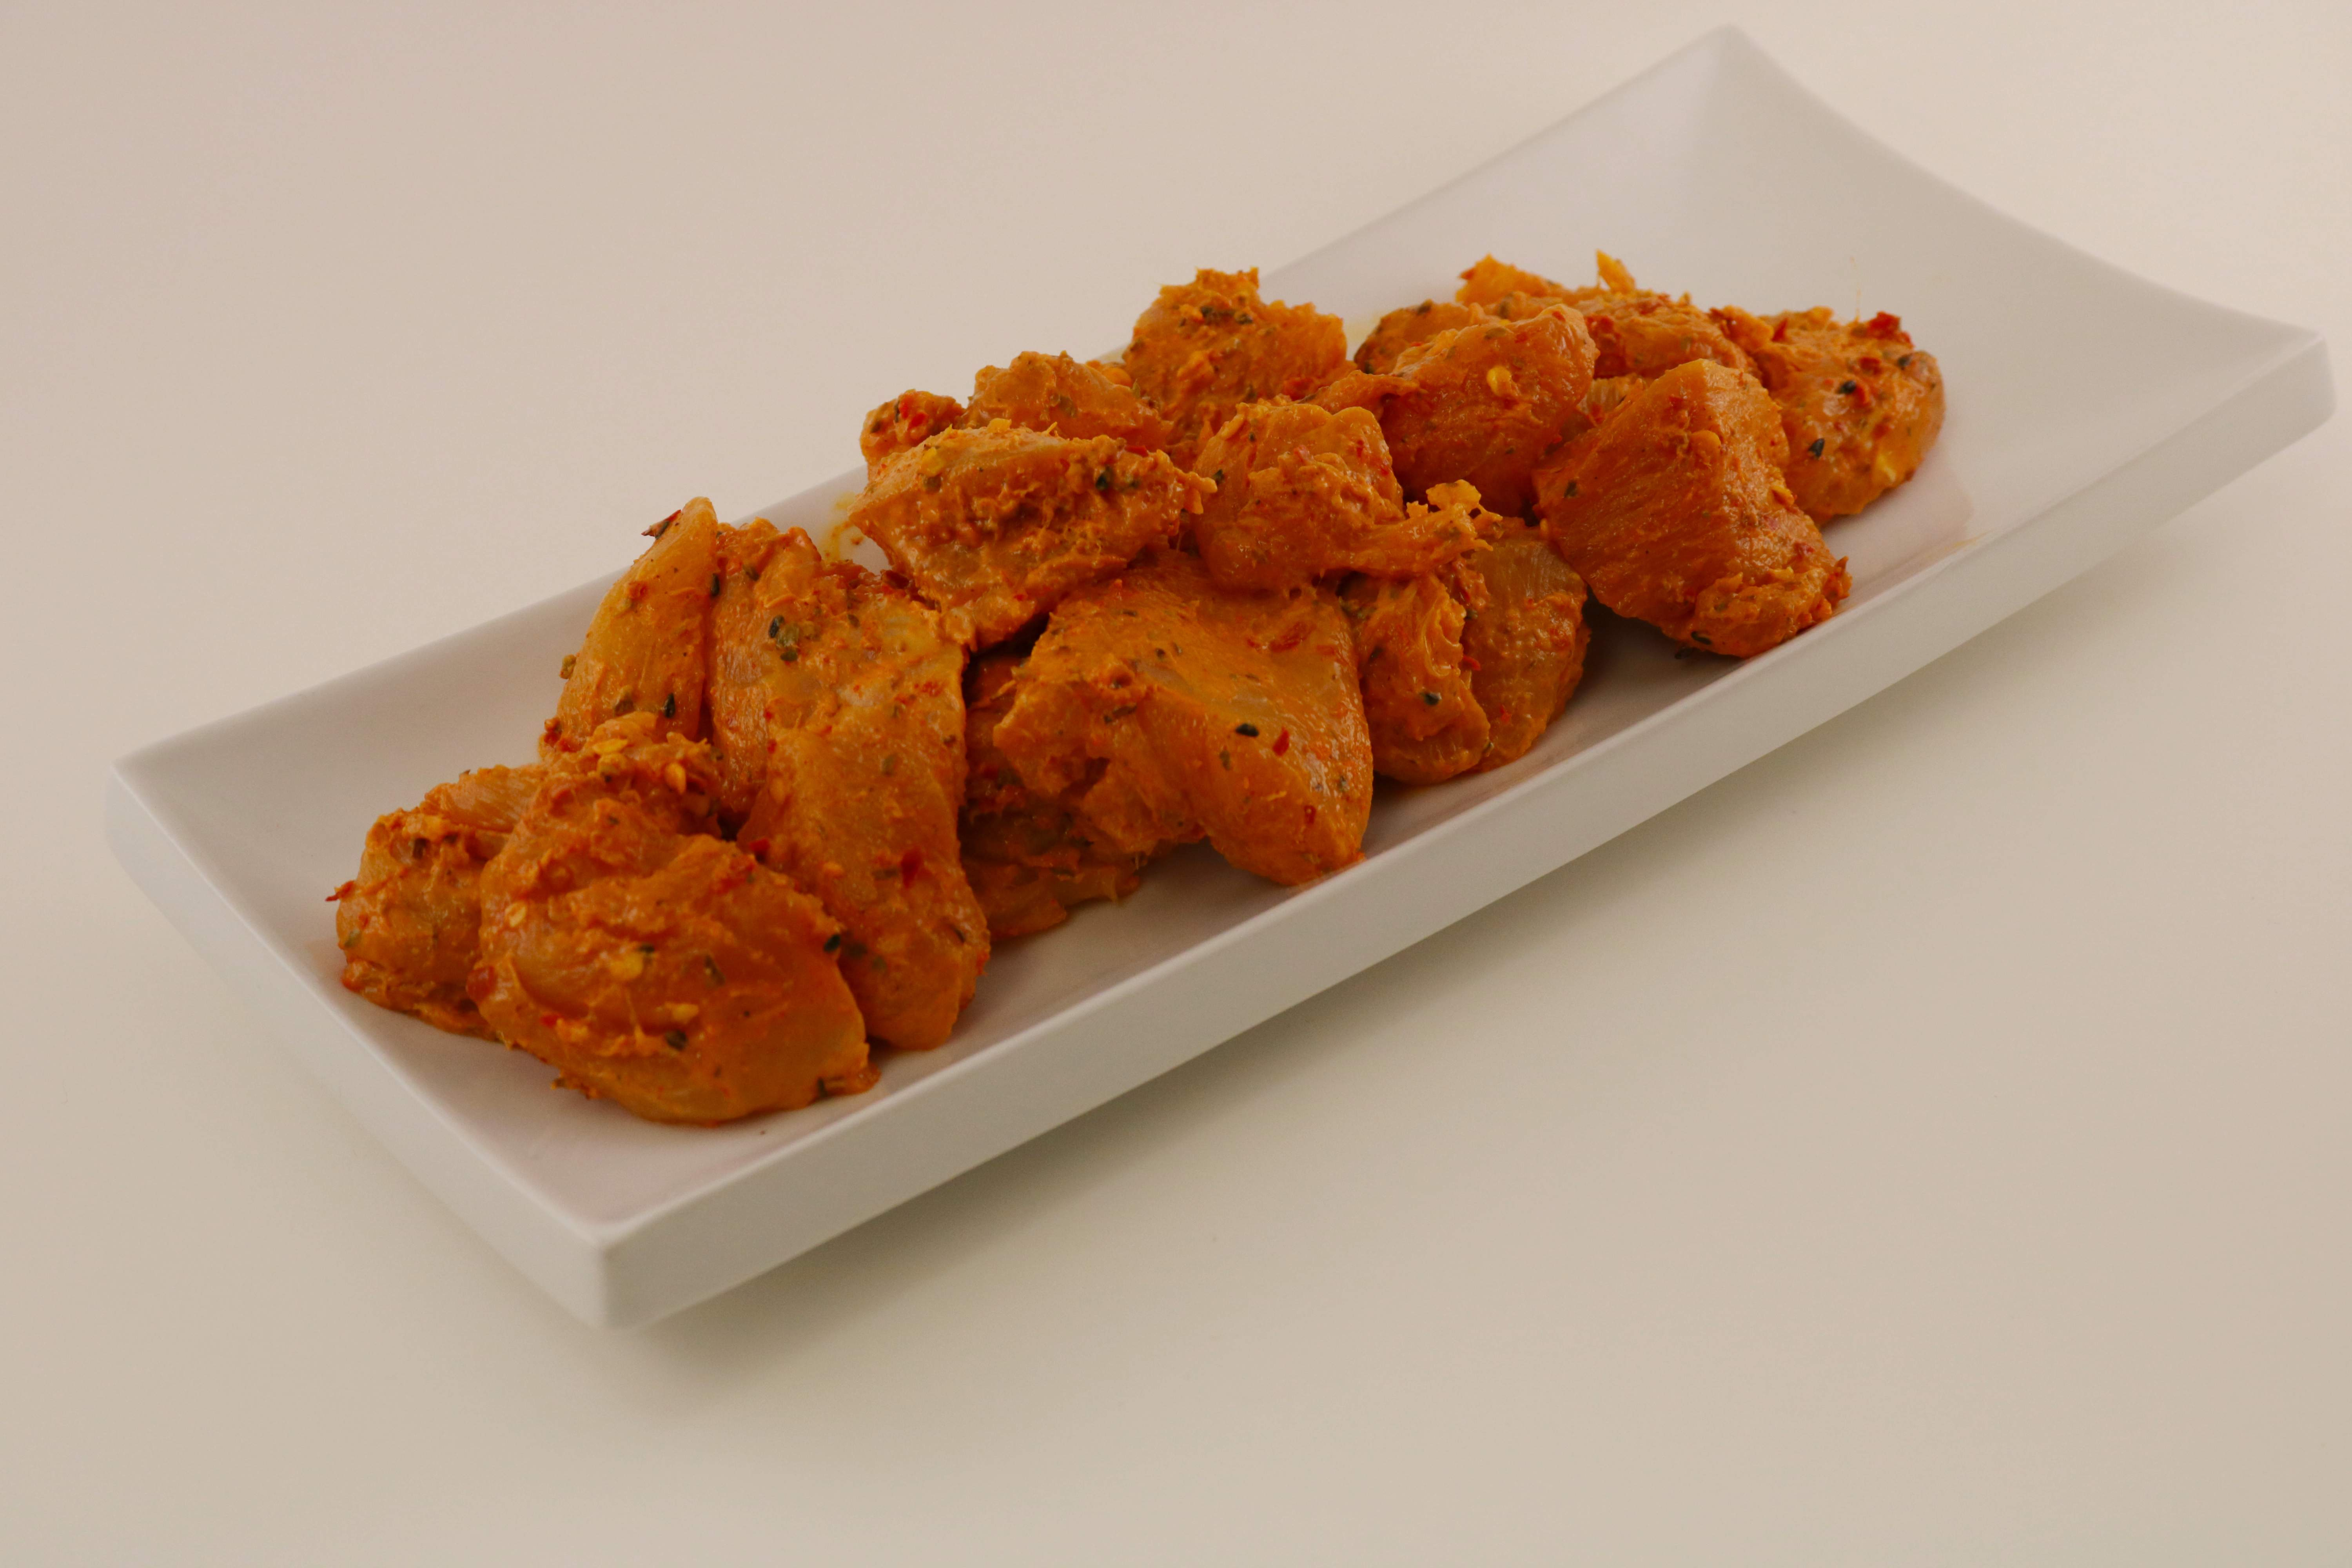 Raw Marinated Butter Chicken Breast Image